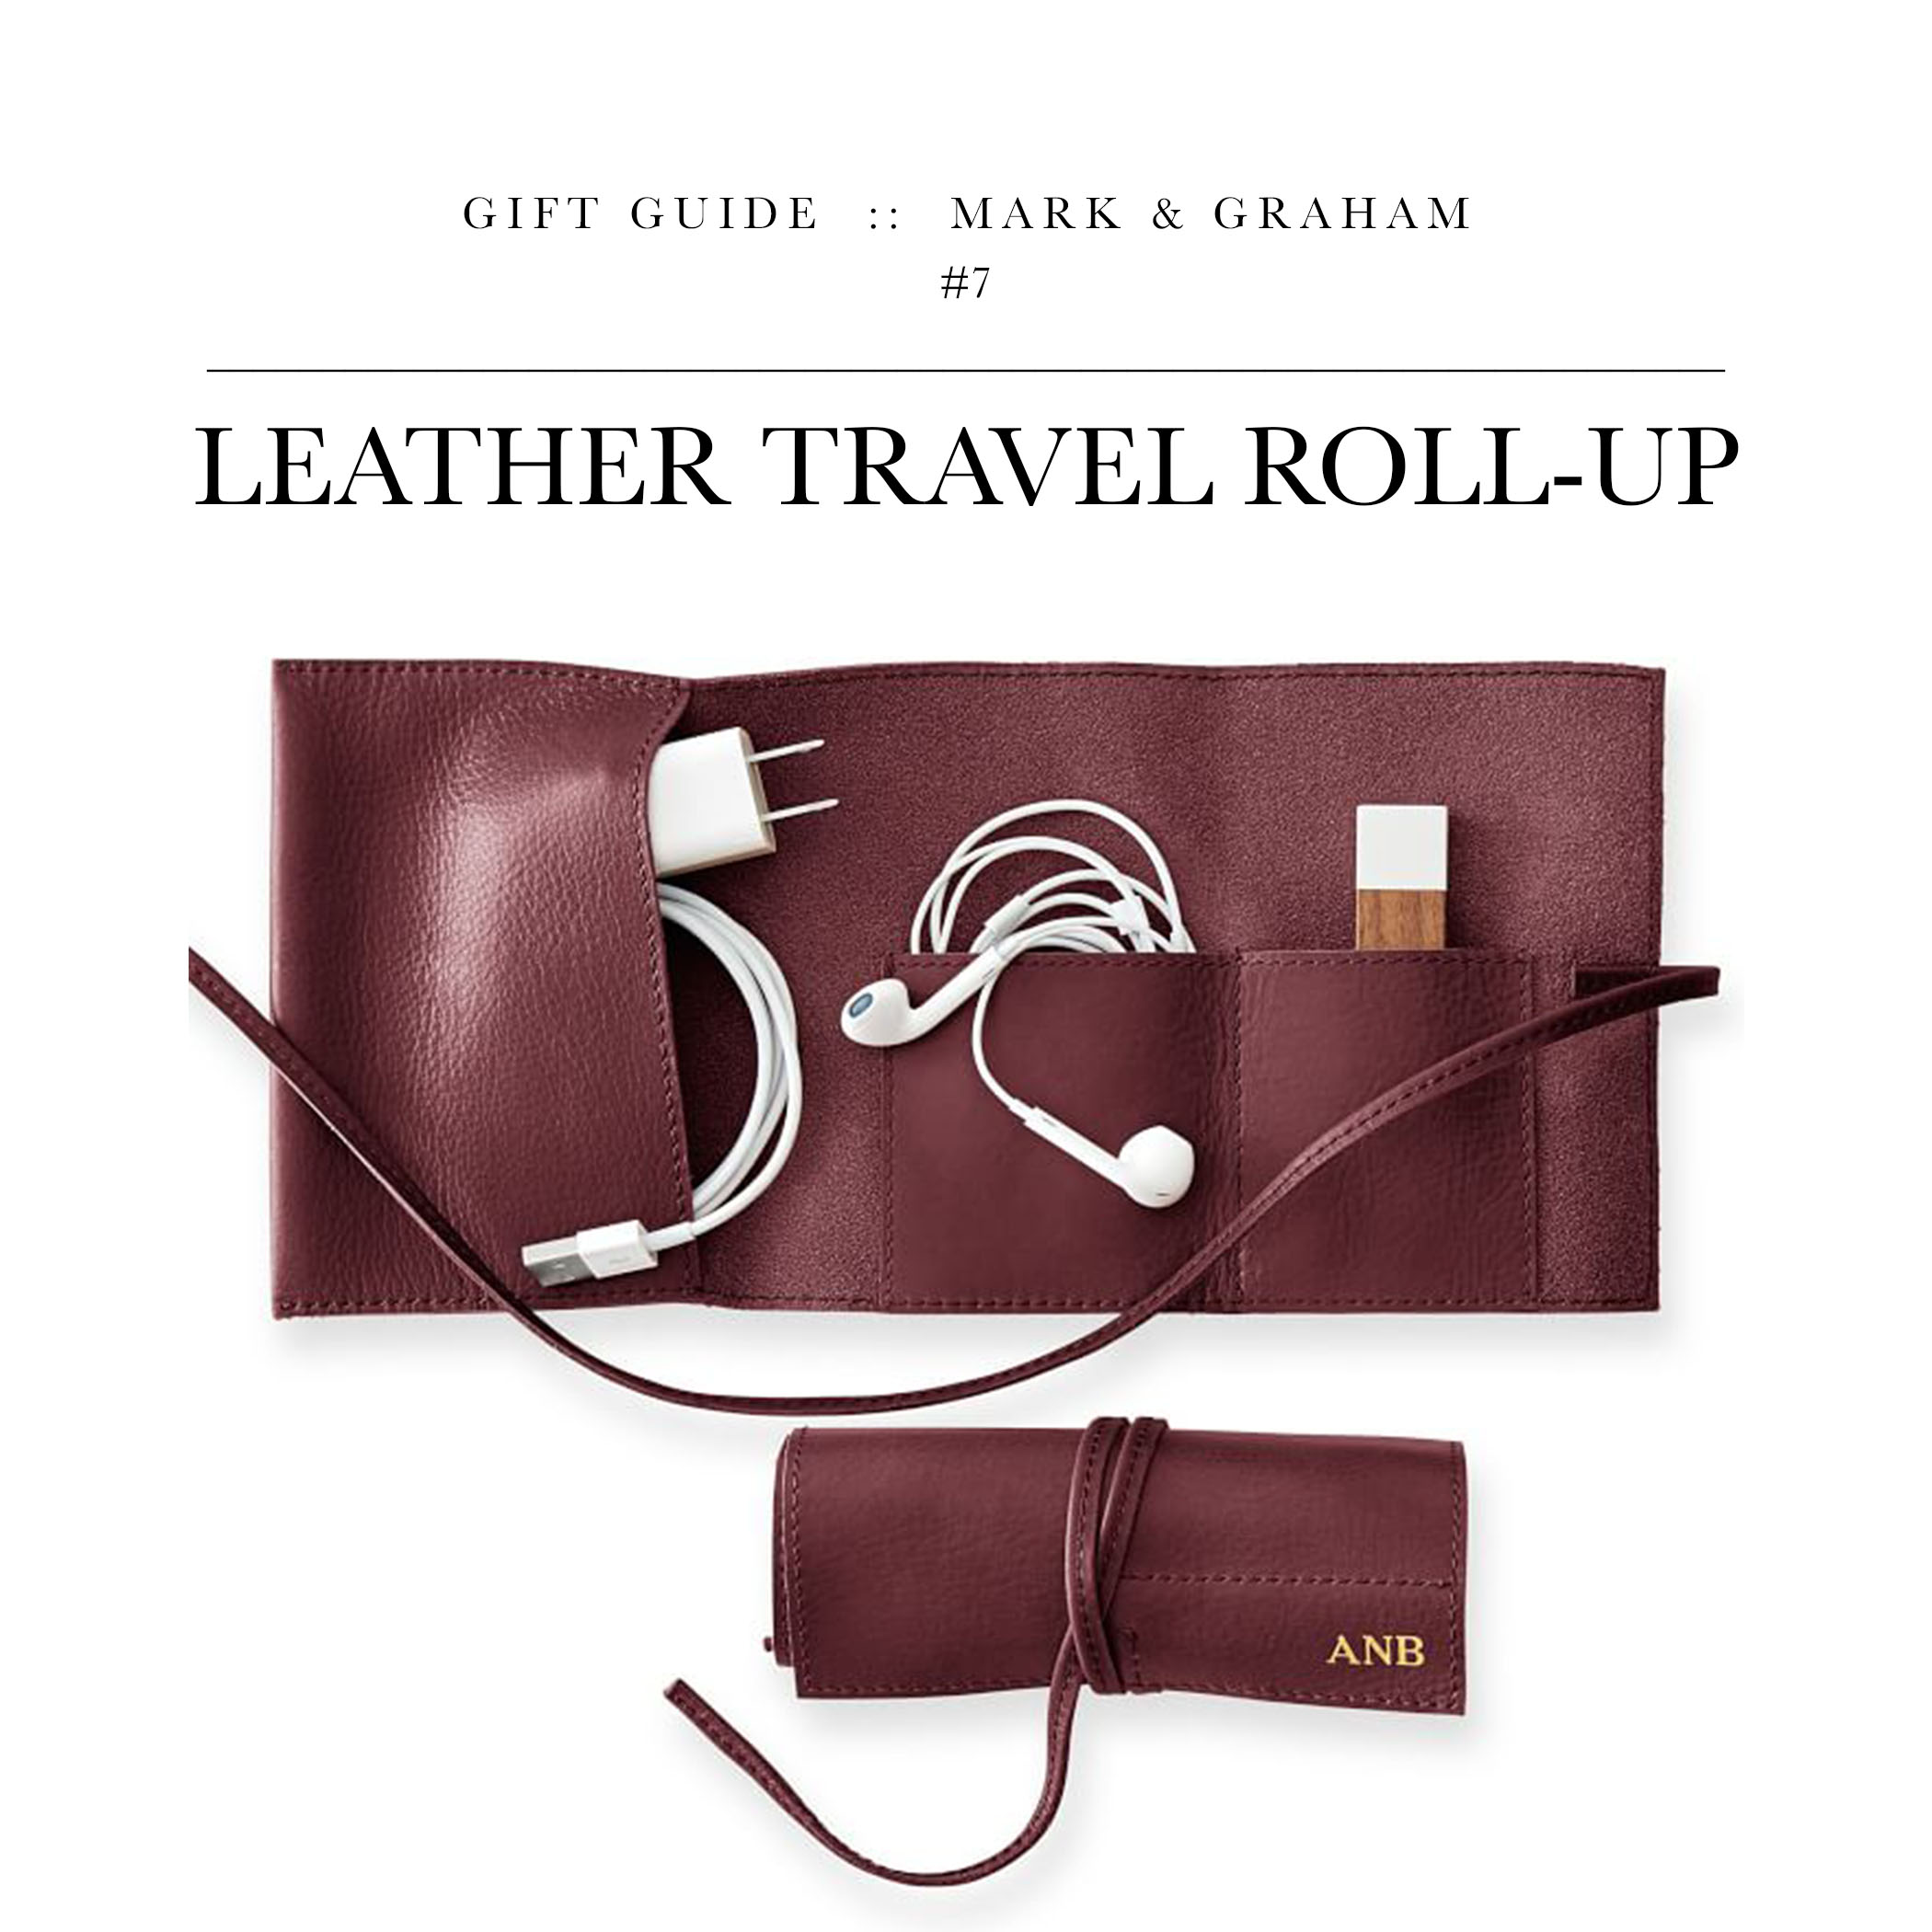 """Leather Travel Roll-Up via Mark & Graham // Love these things. A practical gift to keep one's wires, cords, and electronic """"stuff"""" all in one, convenient spot."""